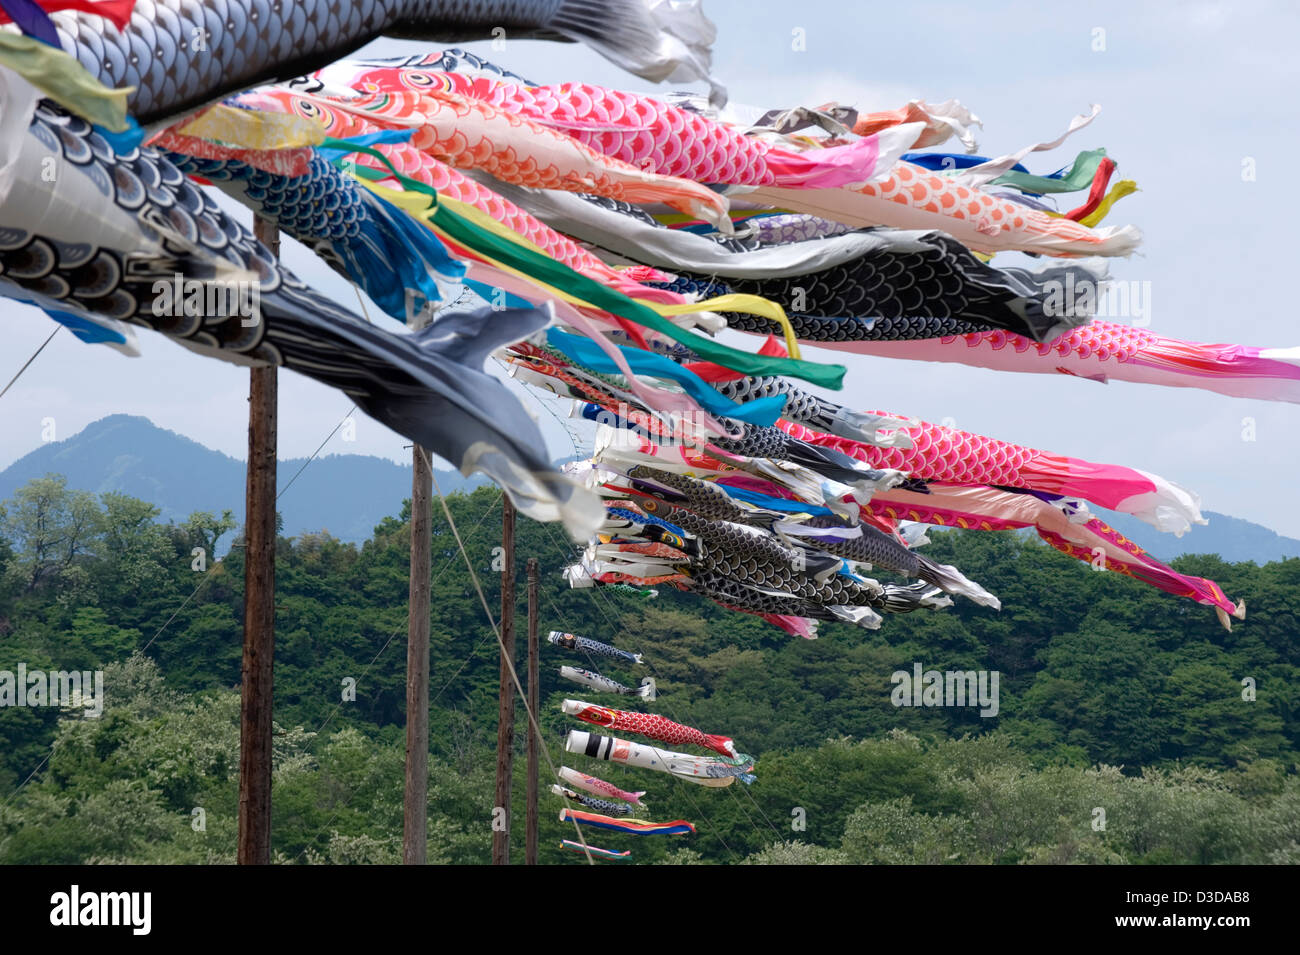 Hundreds of colorful koinobori carp streamers waft in wind on May 5th, Boys Day, a National Holiday in Japan during - Stock Image